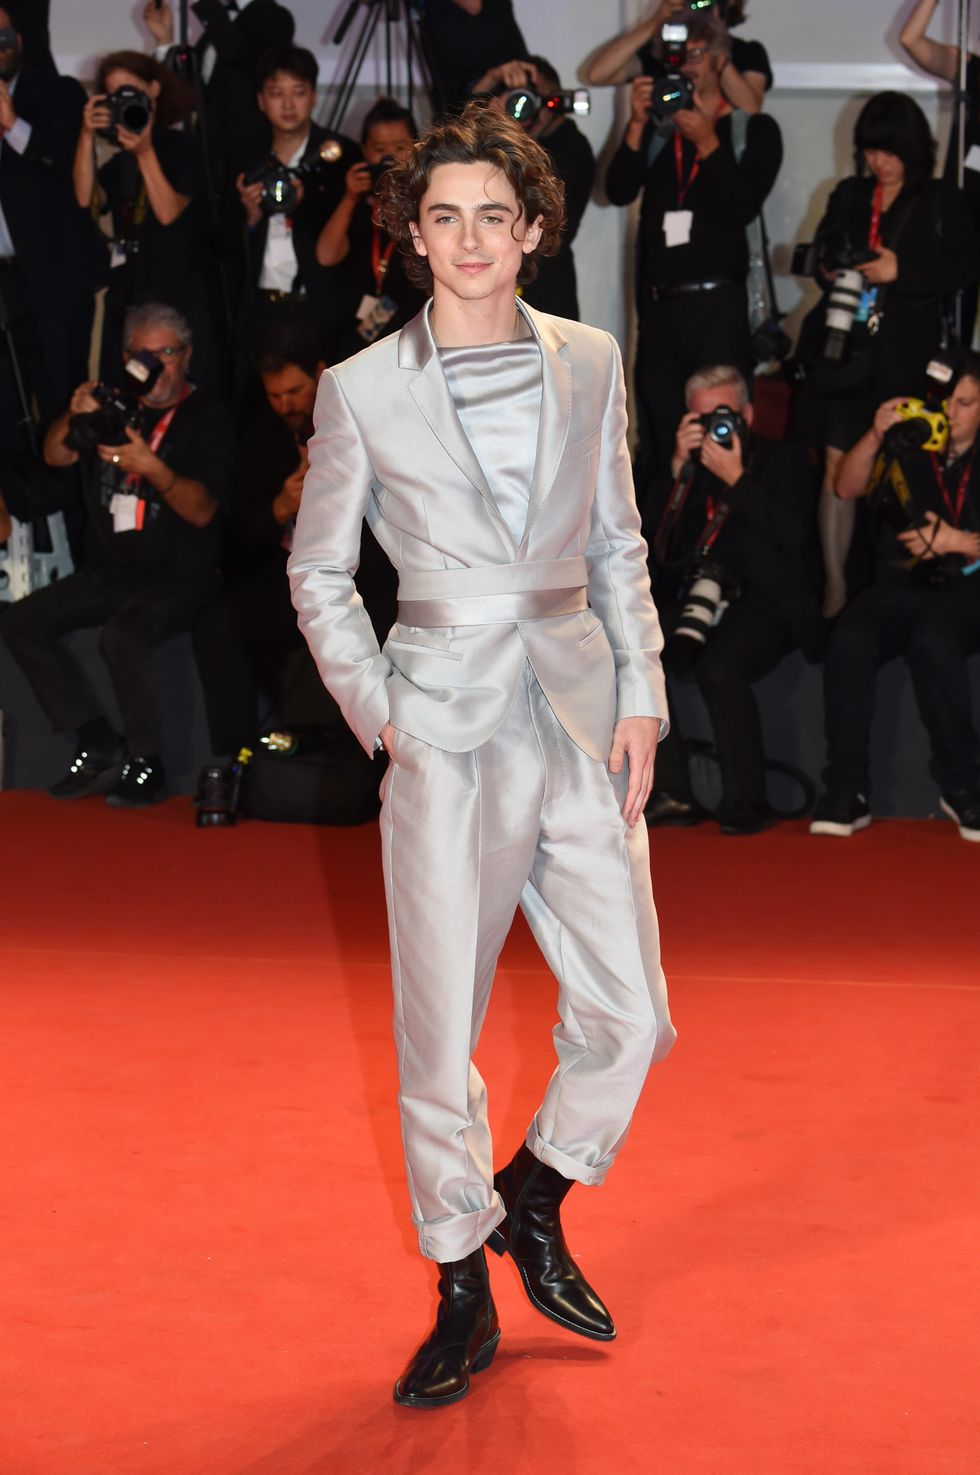 Did We Overhype Timothee Chalamet As A Style Icon Paper